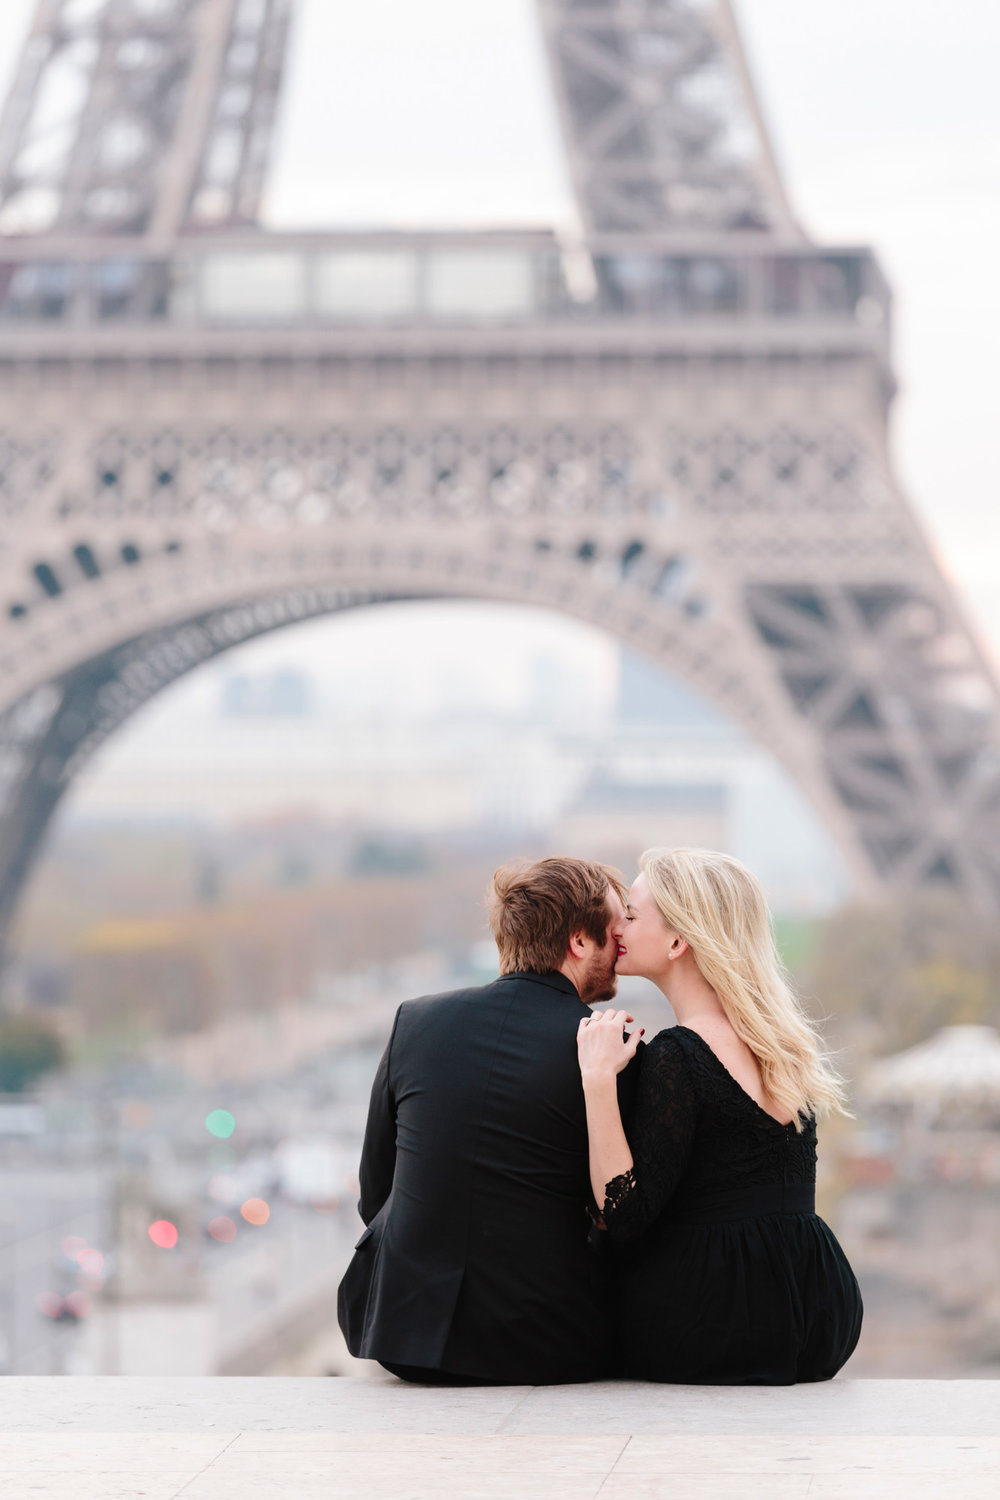 Paris engagement couple portrait at Trocadero with the view of the Eiffel Tower captured by Paris Photographer Federico Guendel